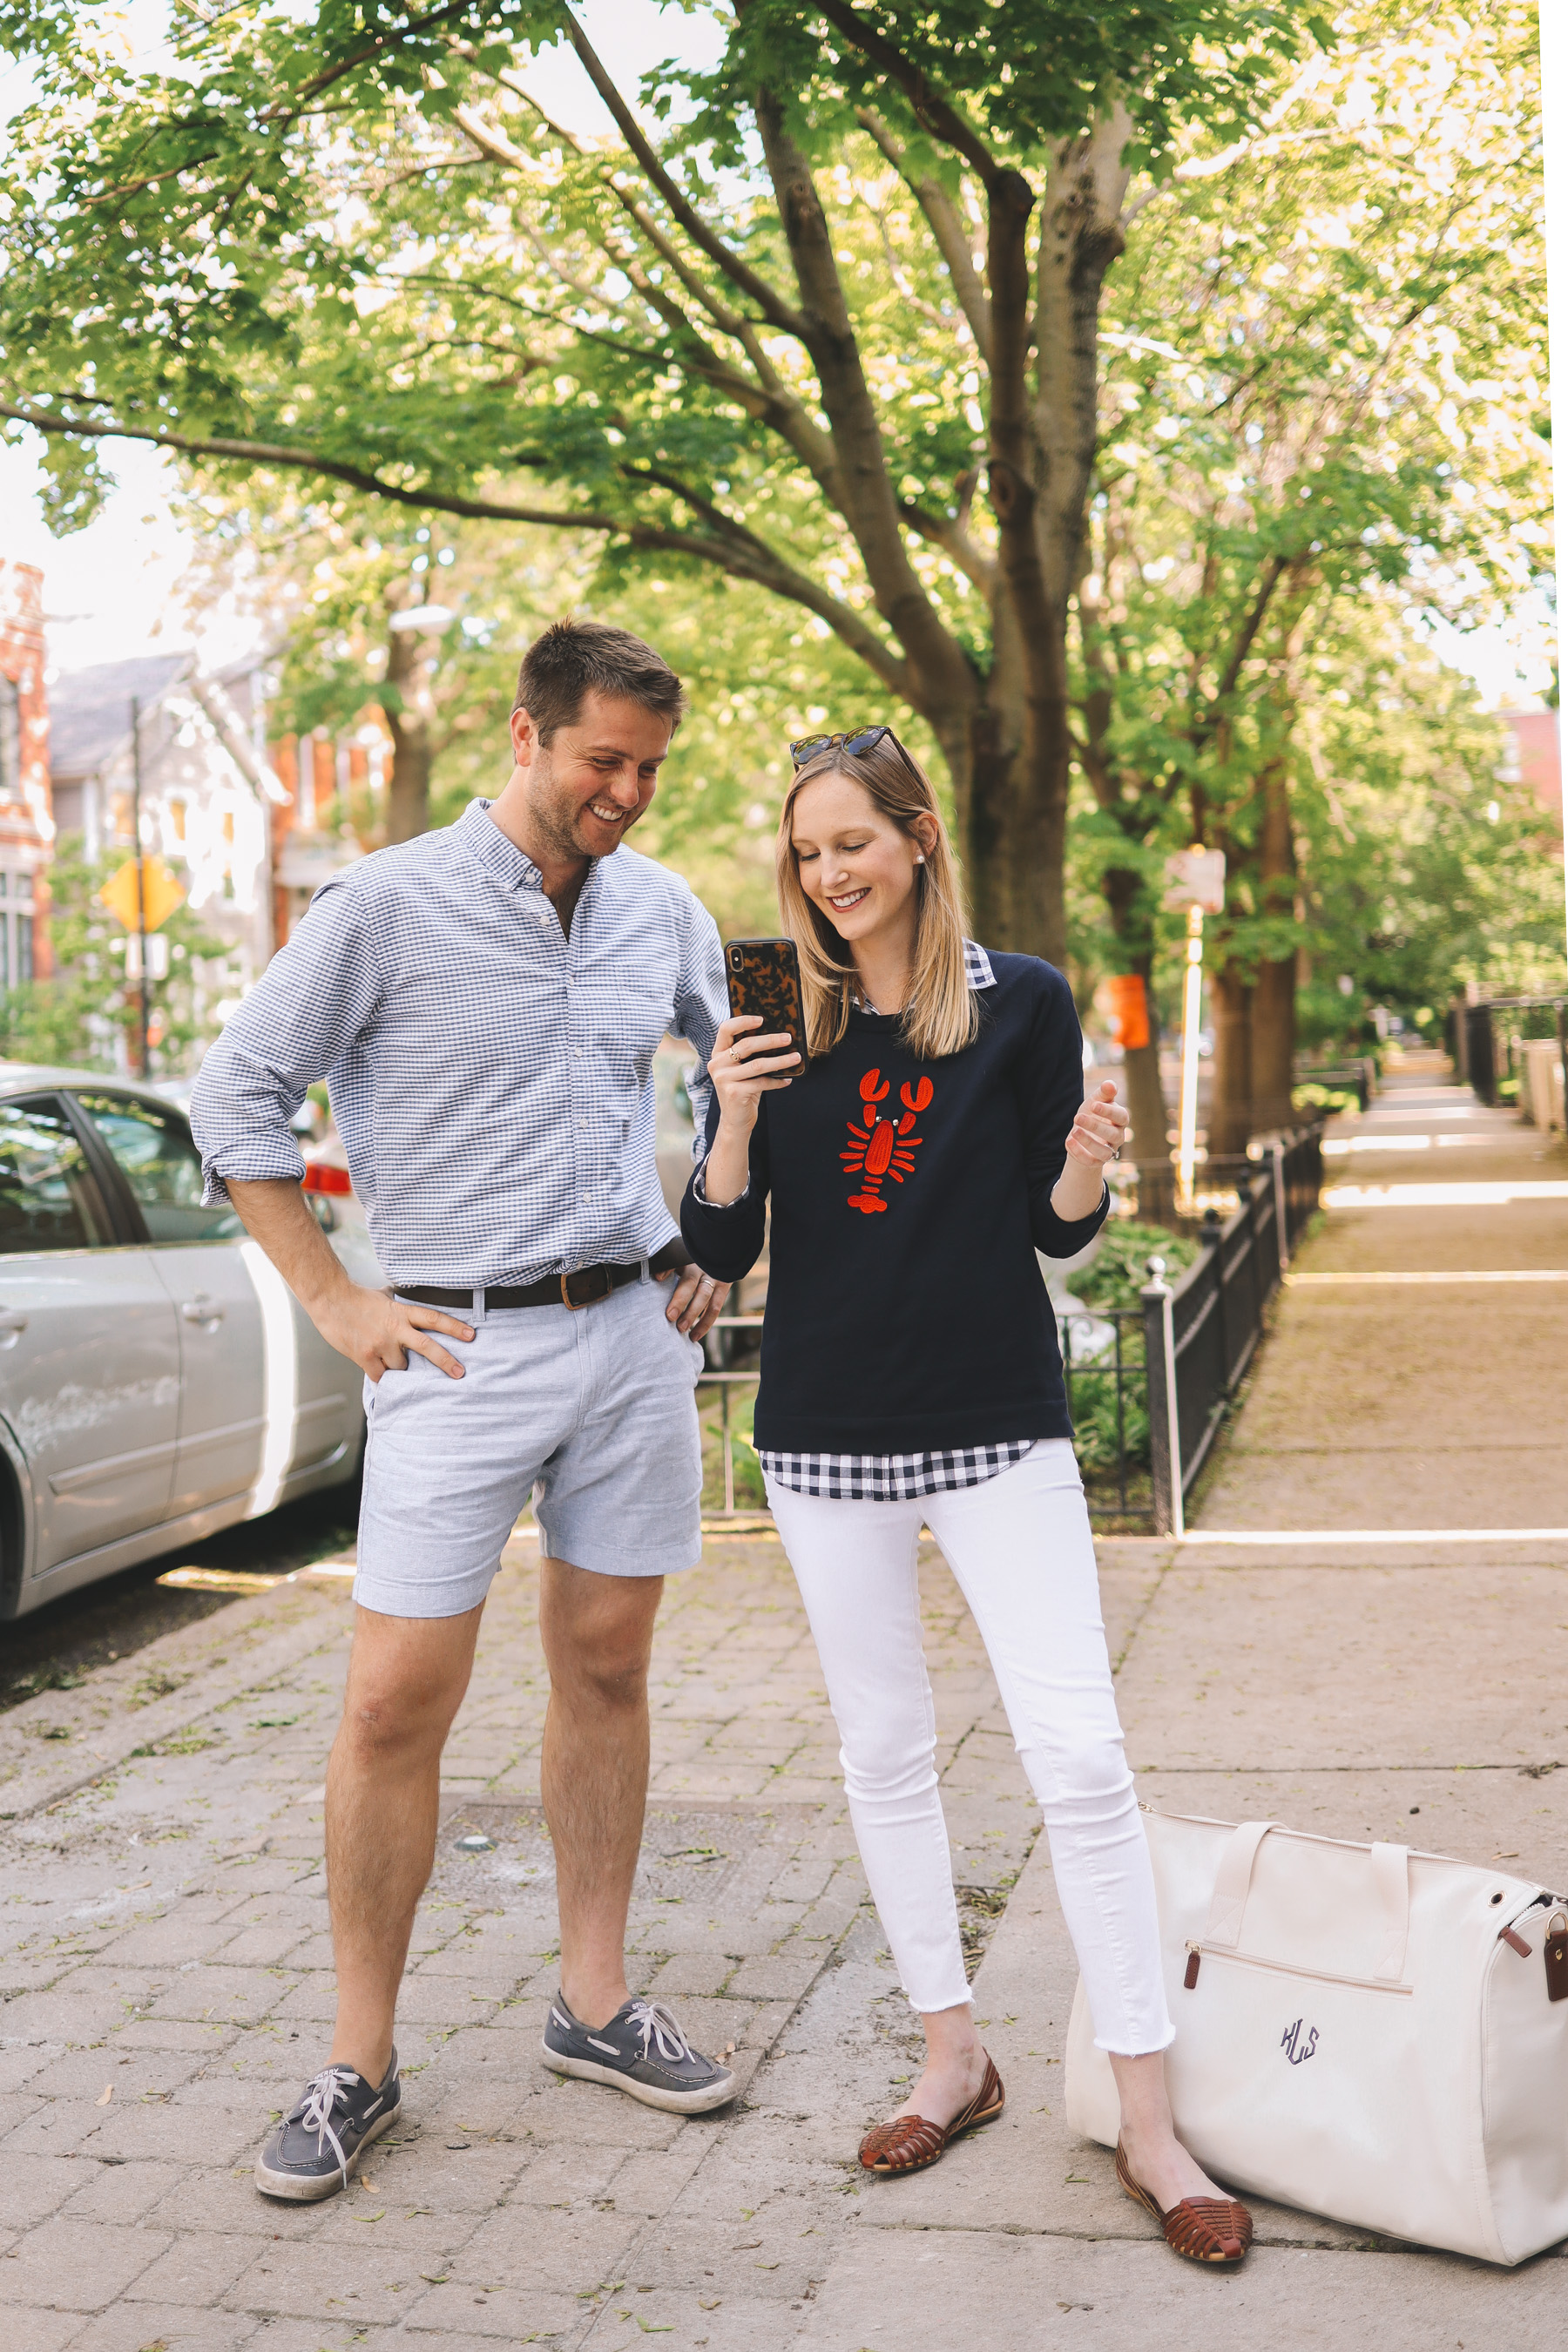 Memorial Day J.Crew Factory Sale by Mitch and Kelly Larkin